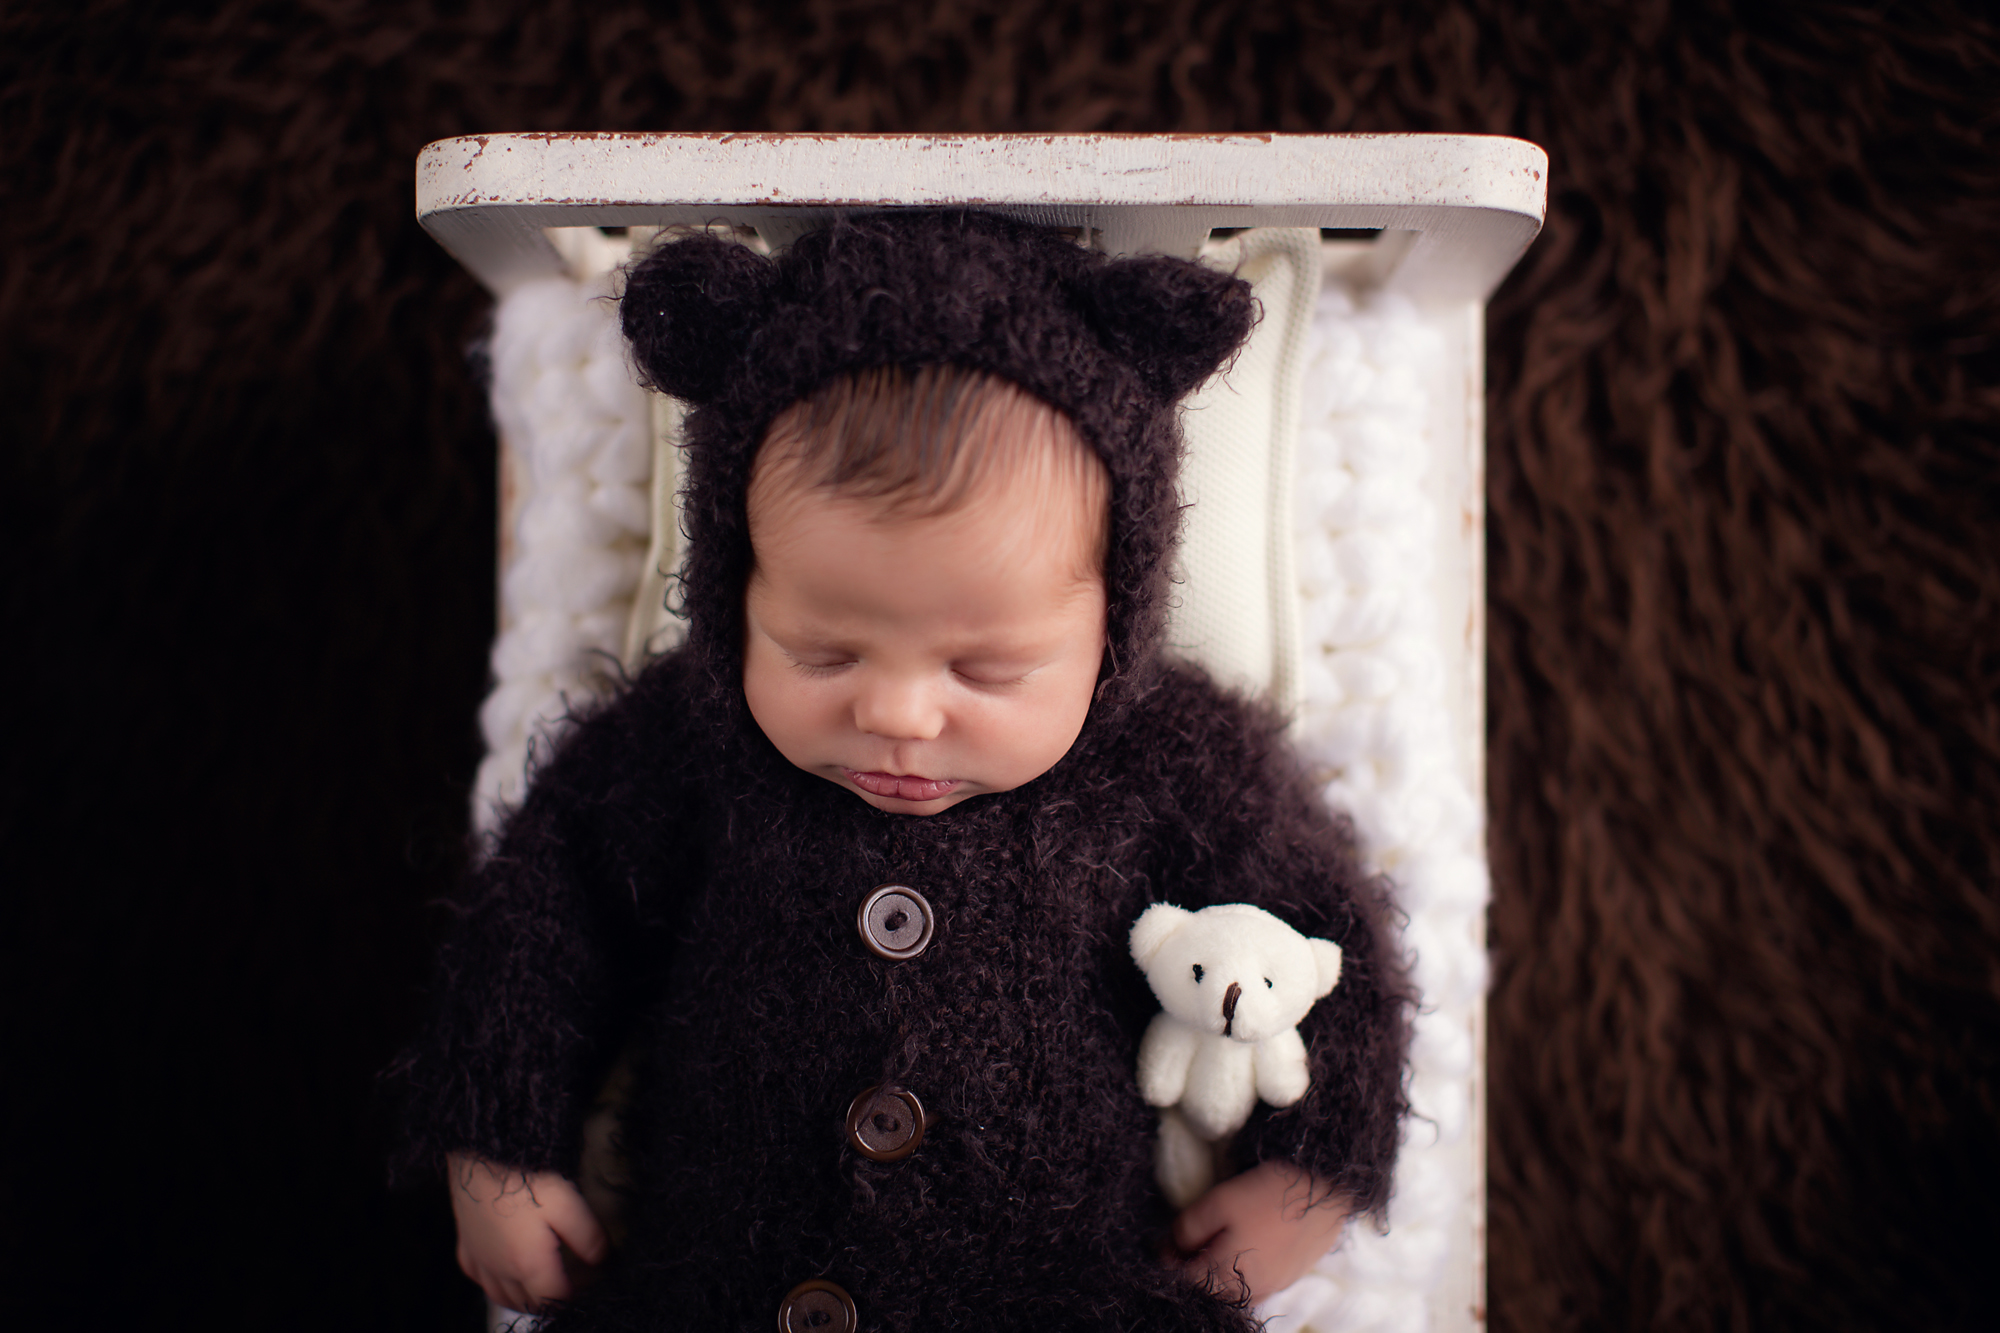 Newborn baby boy photoshoot ideas. Calgary and Airdrie newborn baby photographer - Milashka Photography. Little baby boy is wearing a bear outfit  and is holding a little bear, he is sleeping soundly on a little bed.